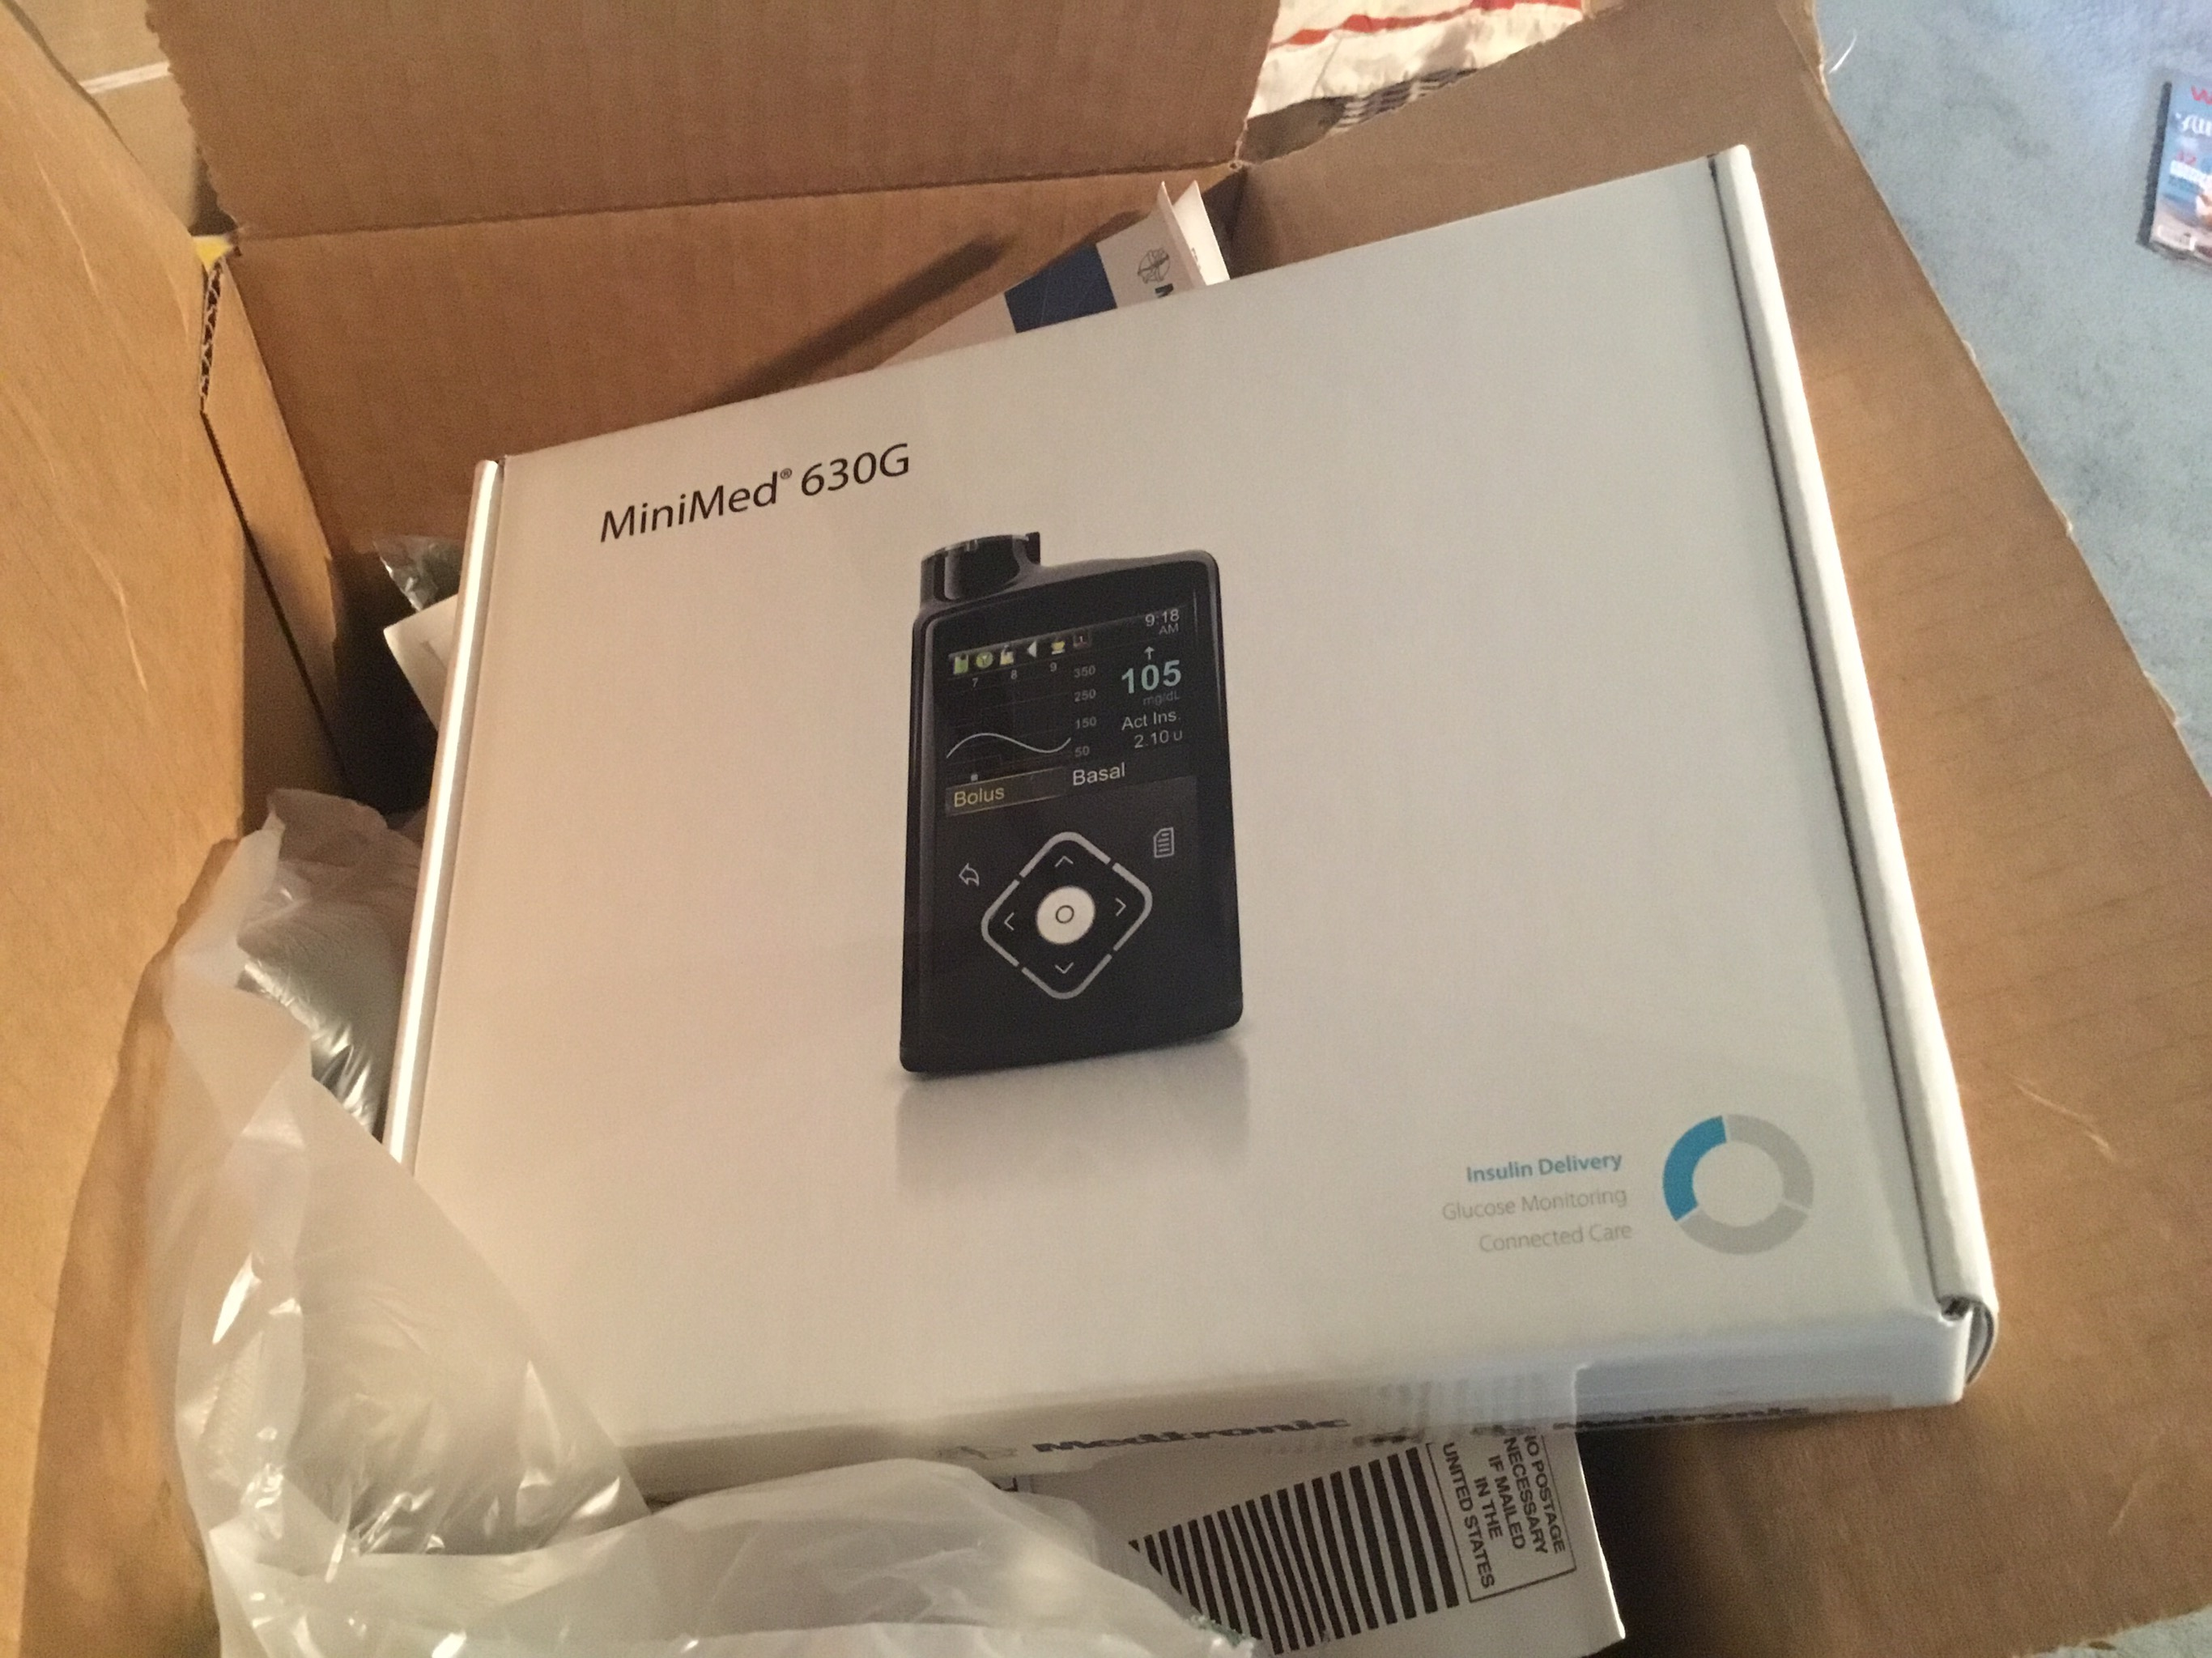 Replacement MiniMed 630G Insulin Pump